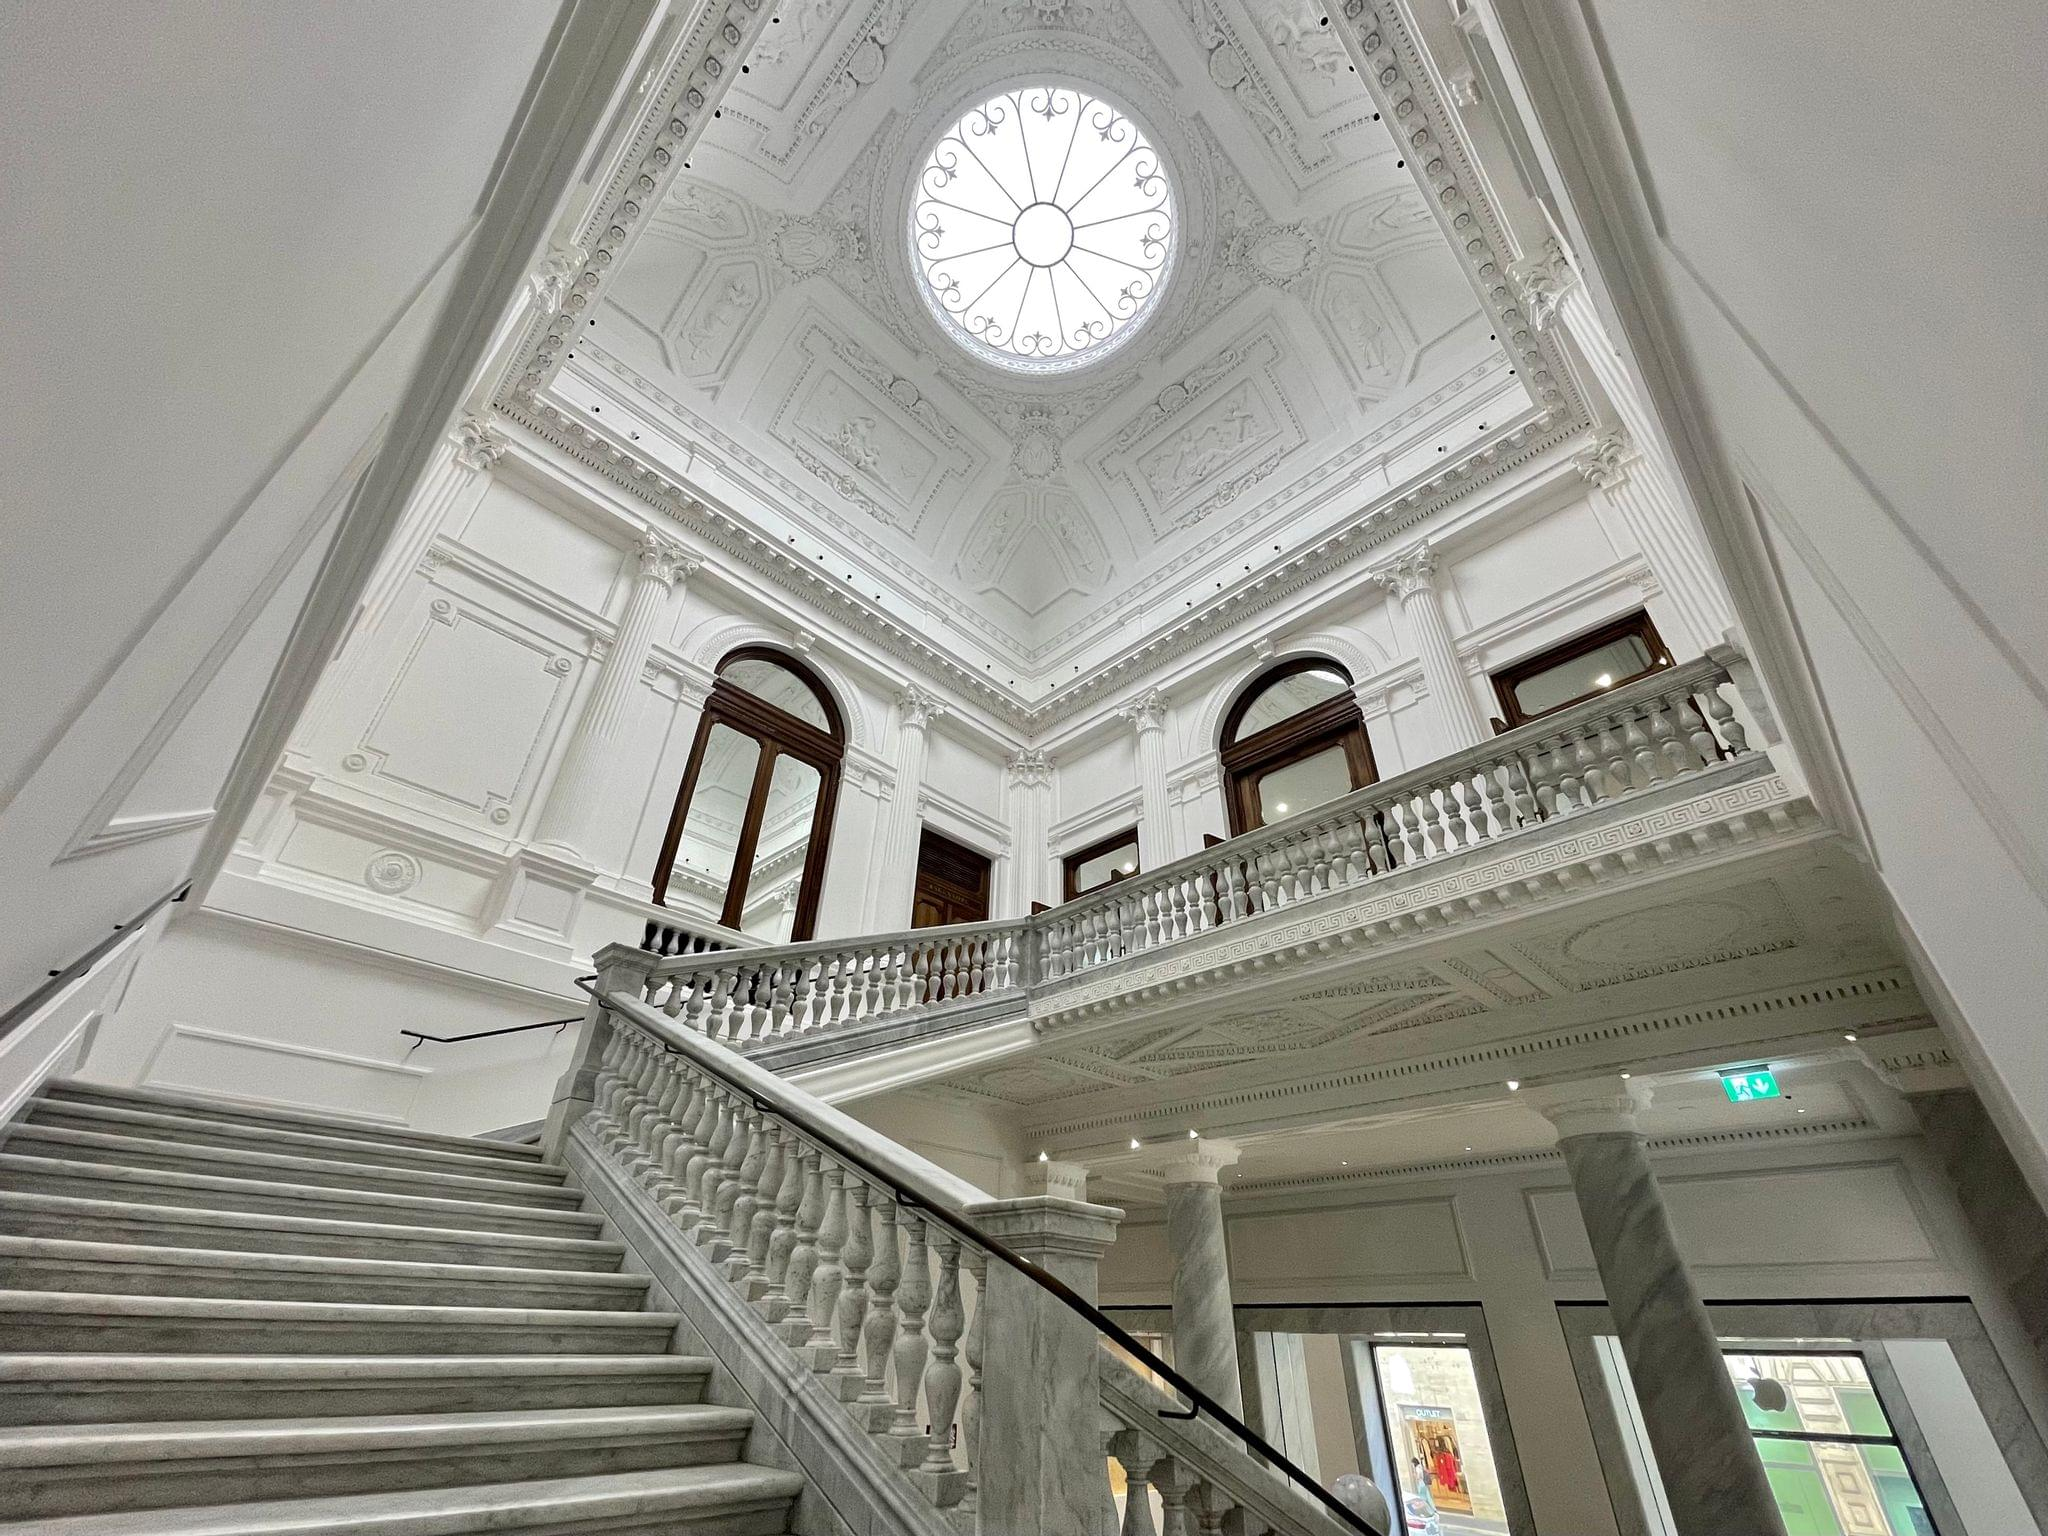 The staircase and skylight.